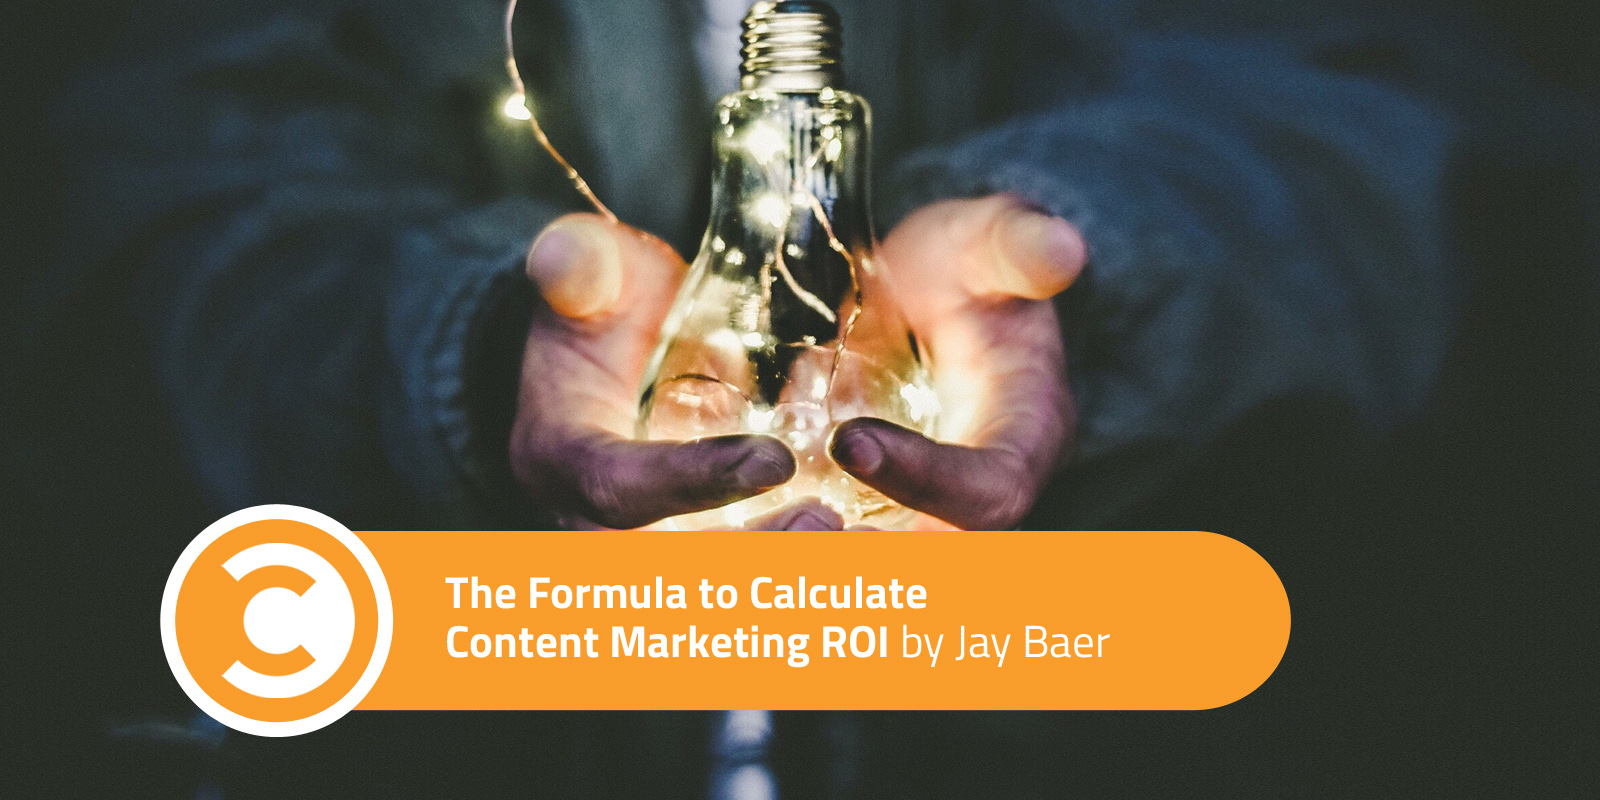 The Formula to Calculate Content Marketing ROI_